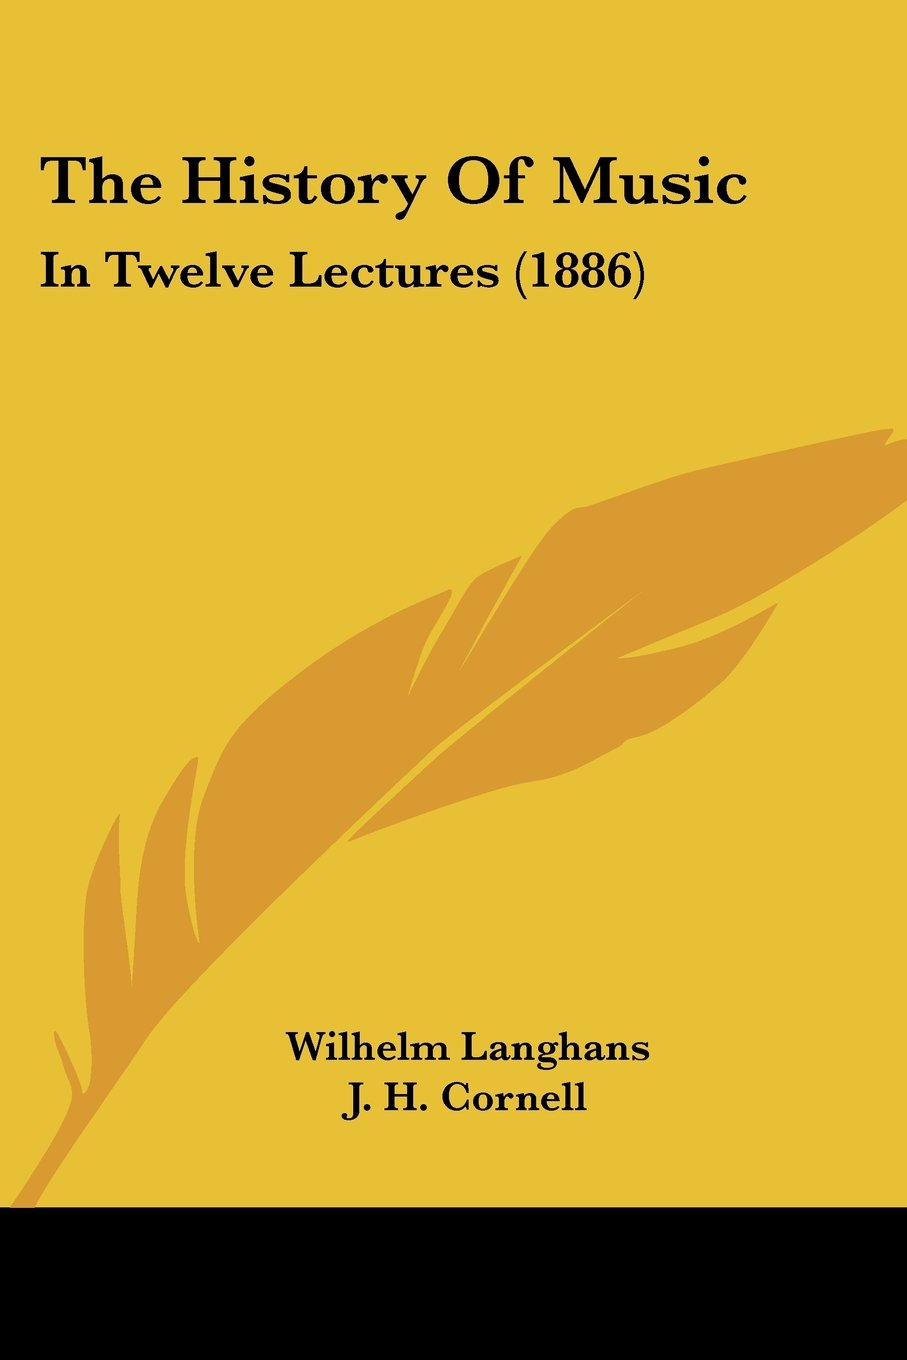 Download The History Of Music: In Twelve Lectures (1886) PDF